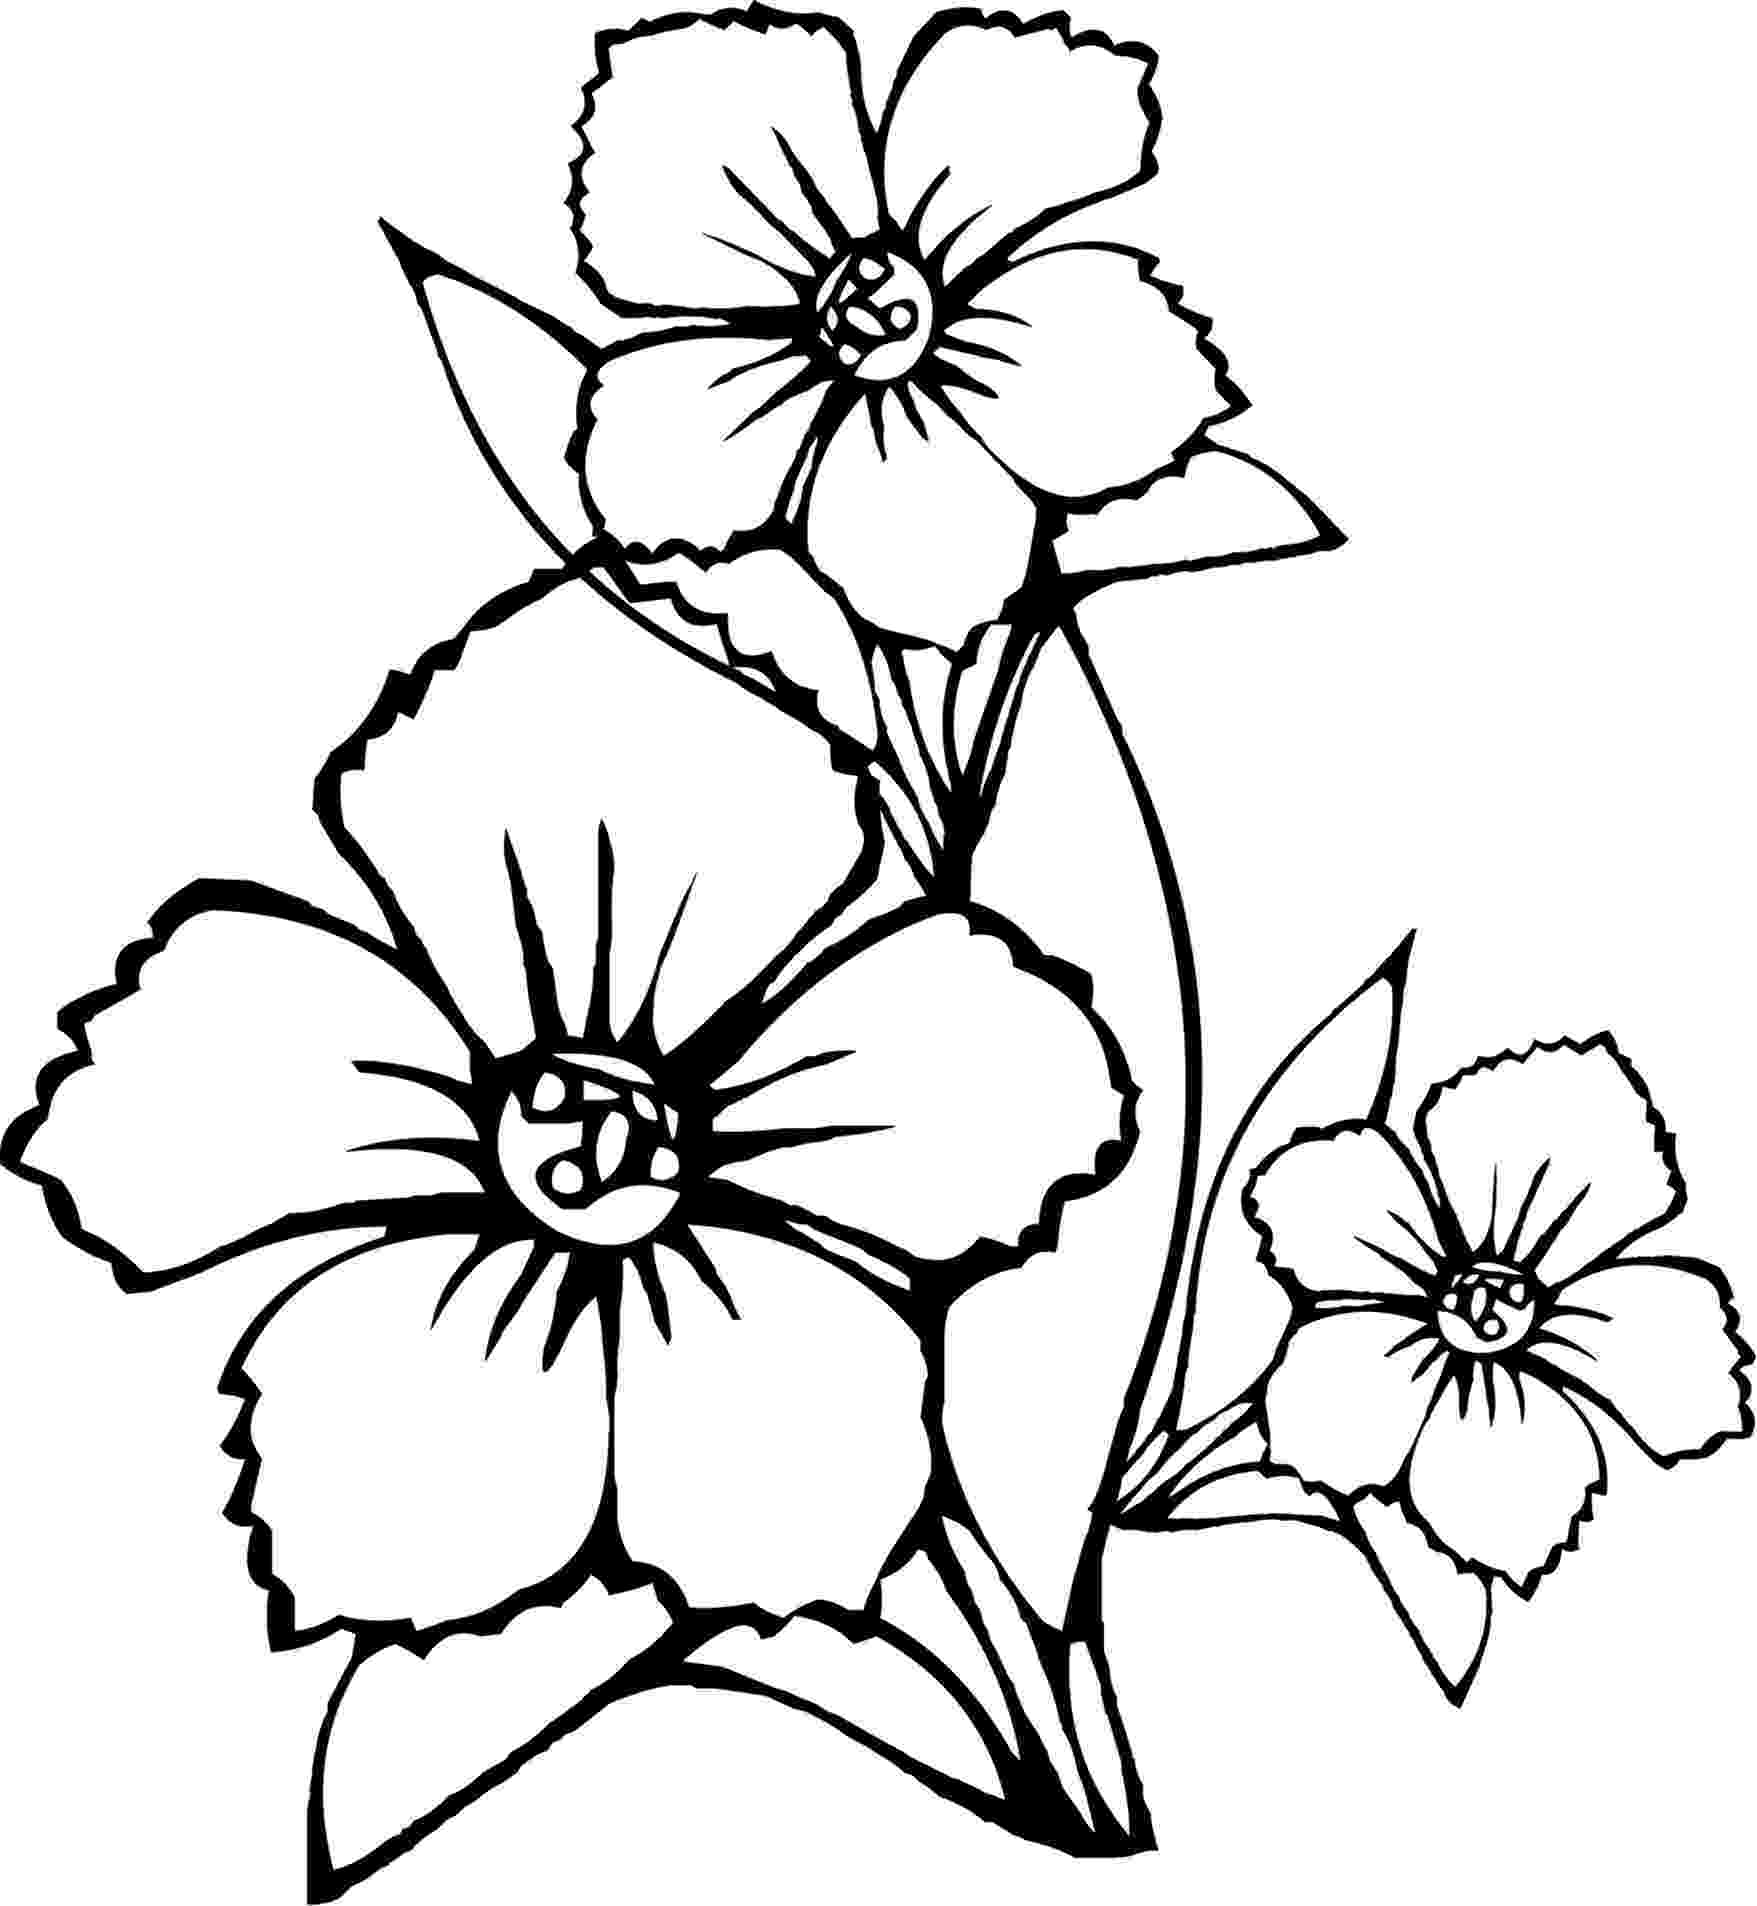 flower coloring sheets for kids free printable flower coloring pages for kids best flower sheets for kids coloring